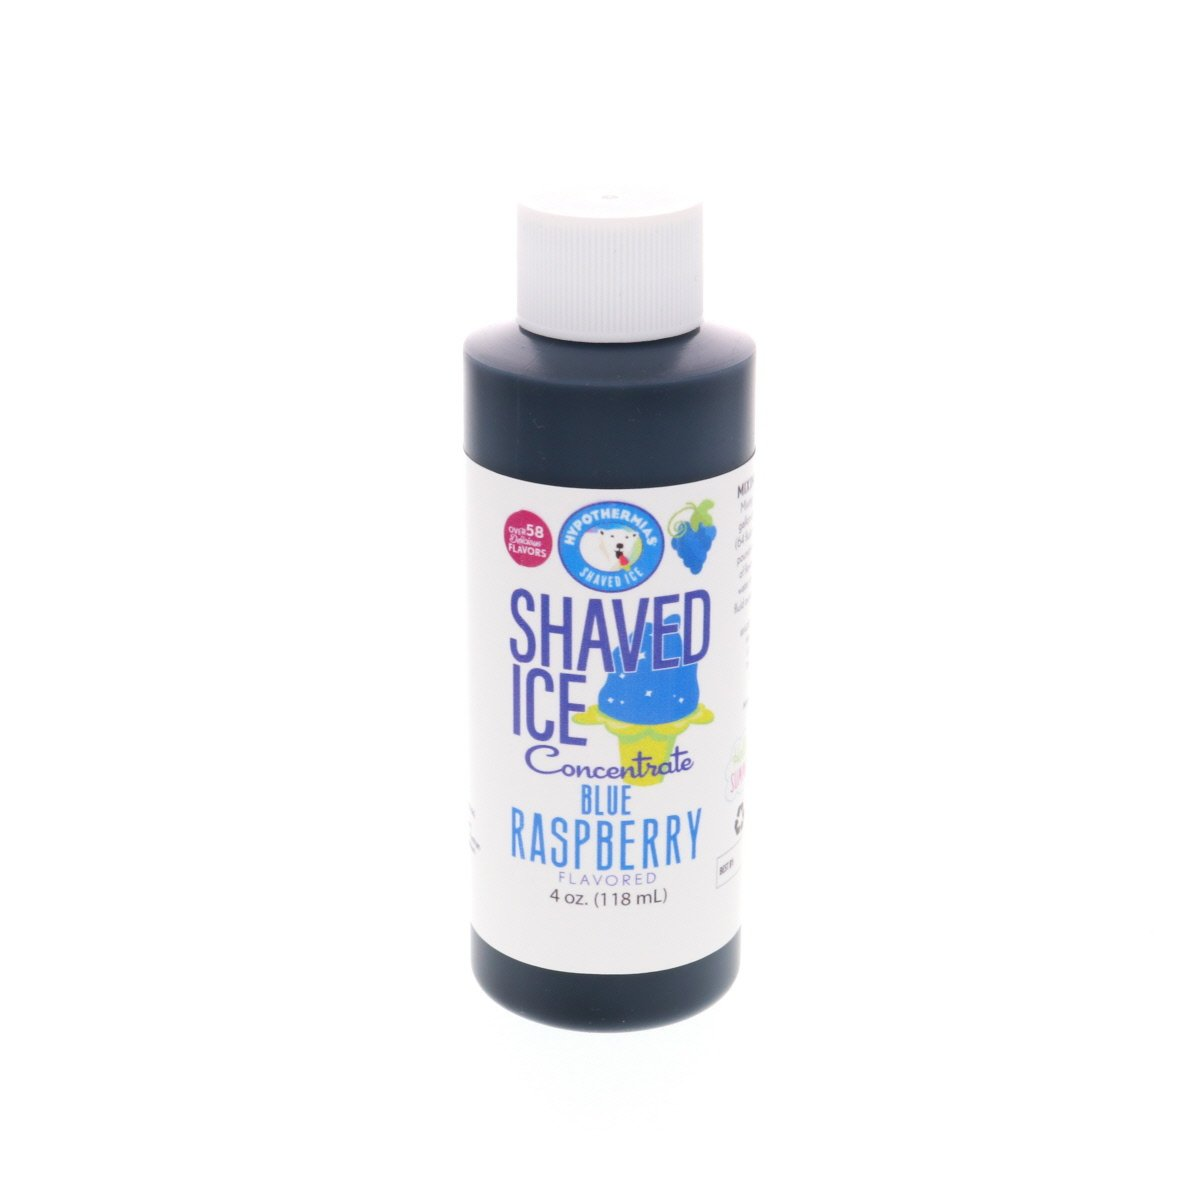 4 Fl Oz syrup concentrate for shaved ice blue raspberry